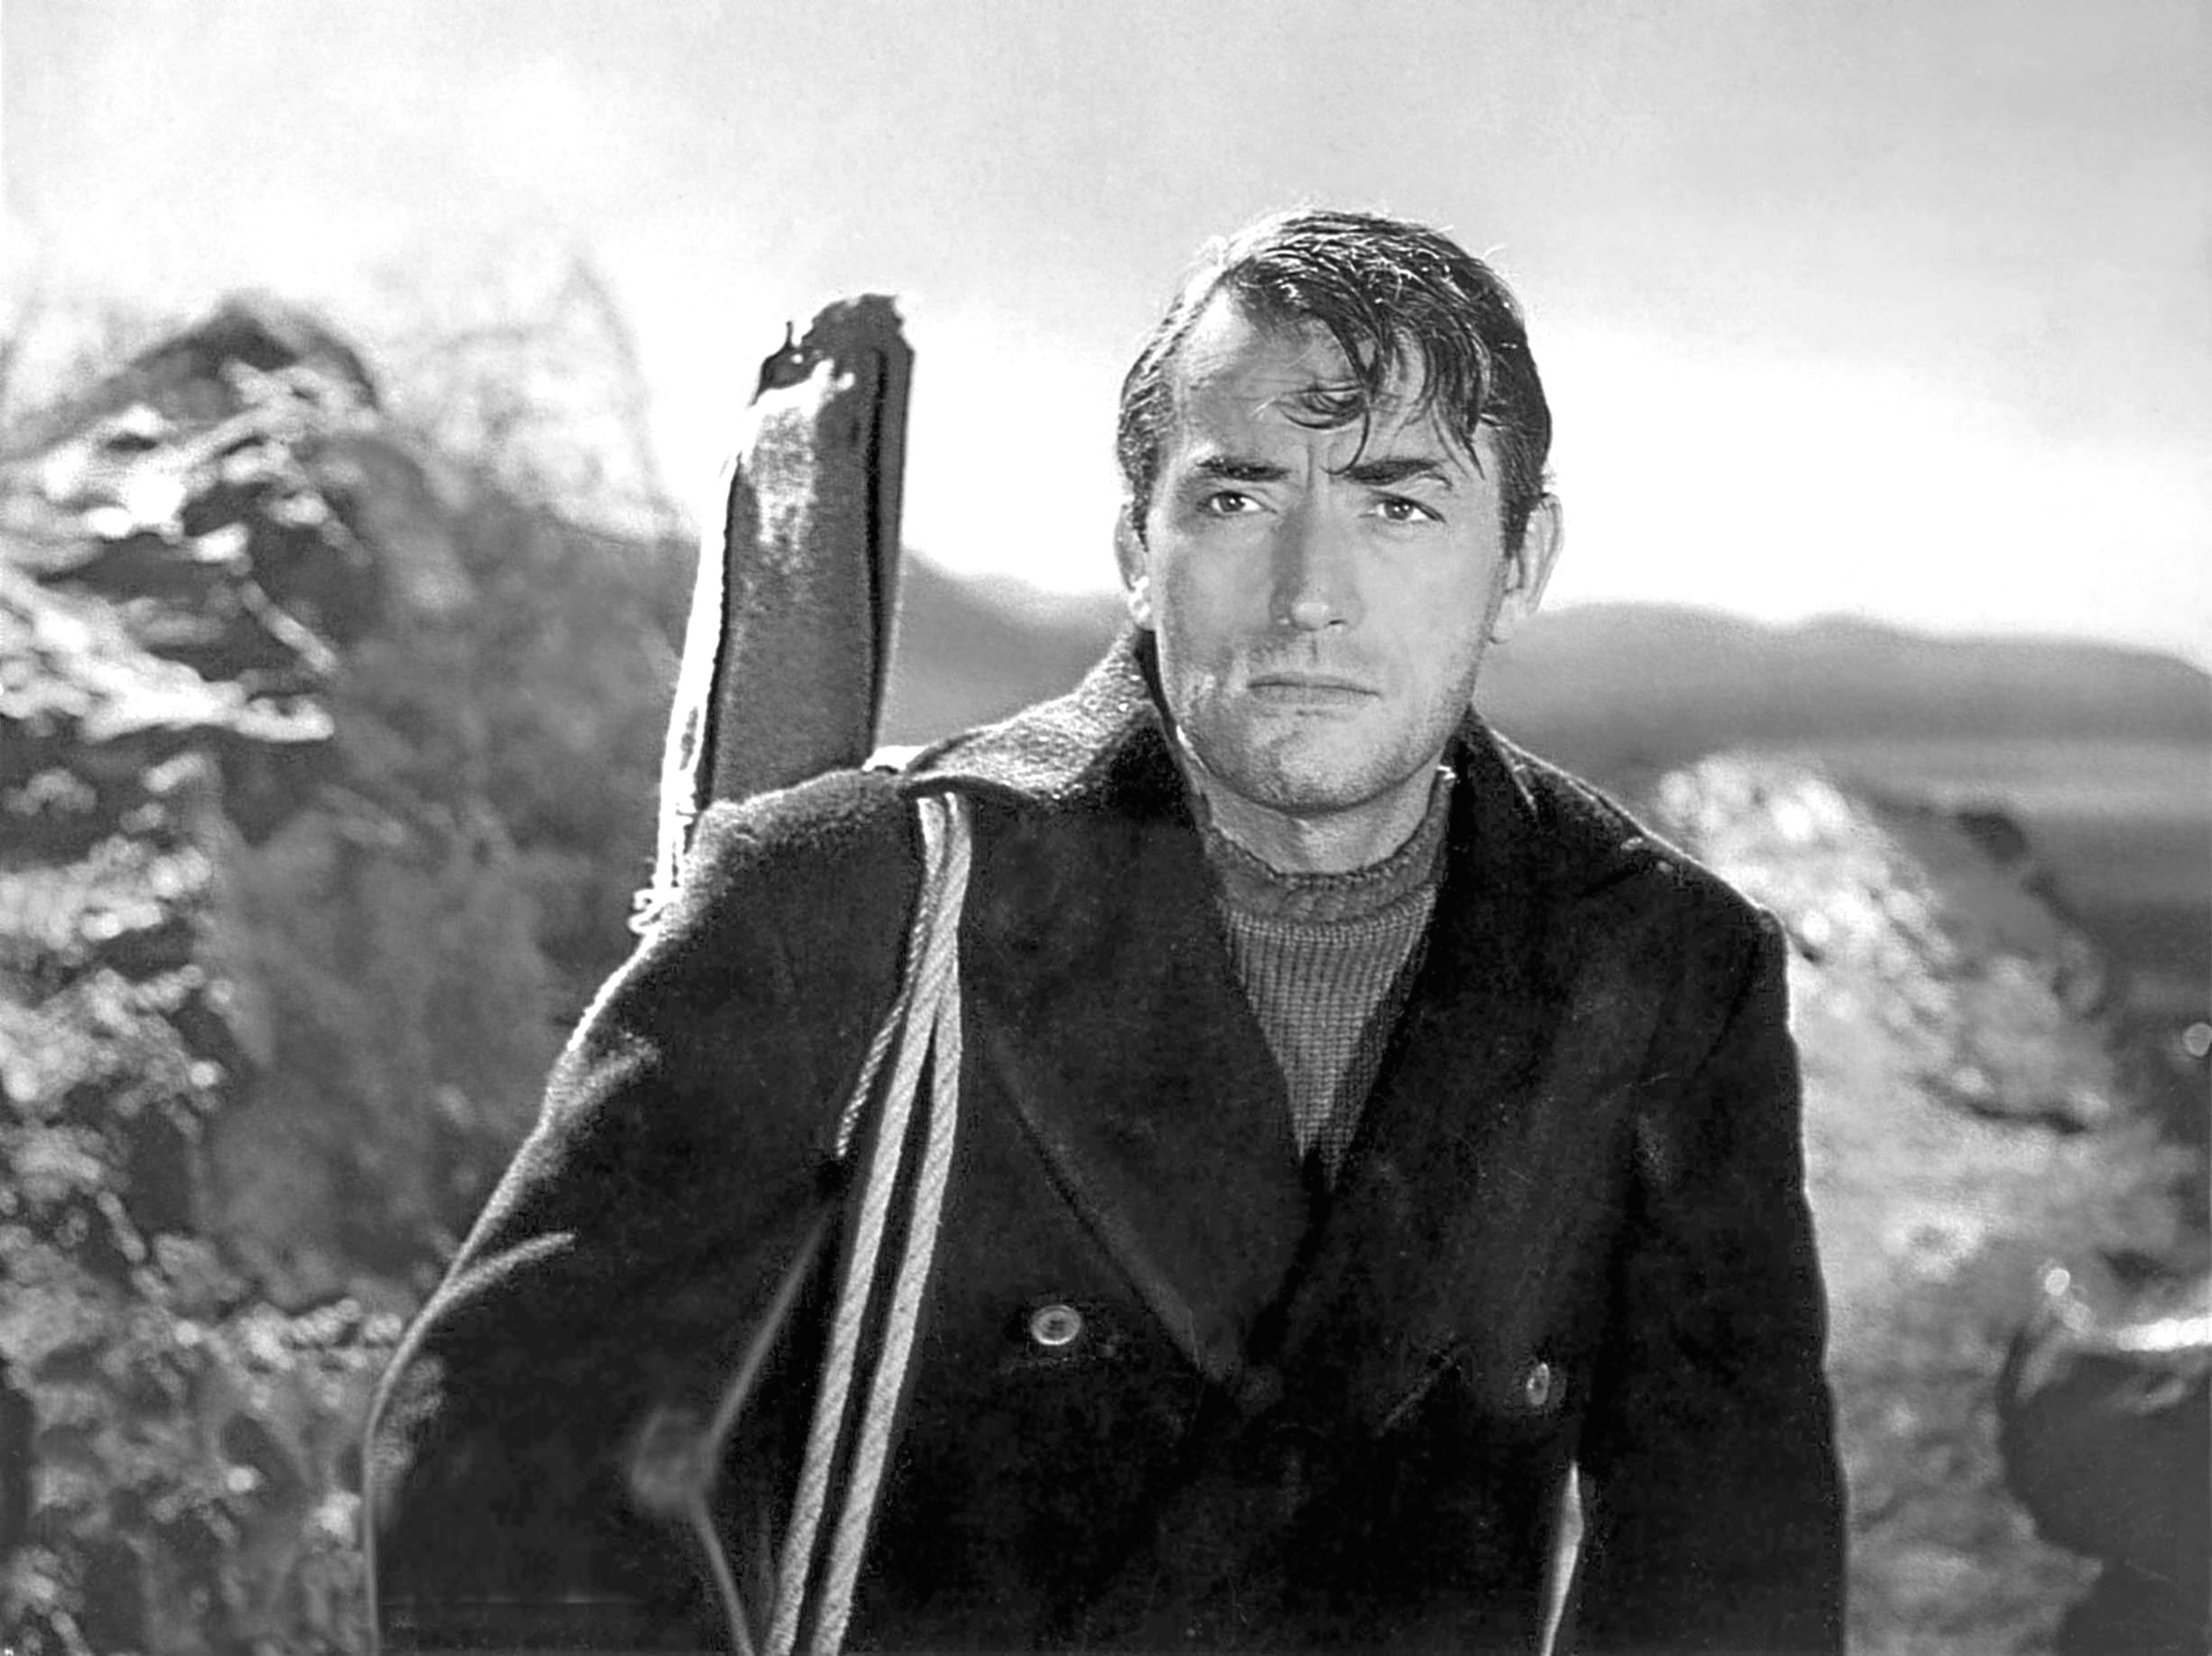 Gregory Peck in The Guns of Navarone, 1961 (Allstar/COLUMBIA)